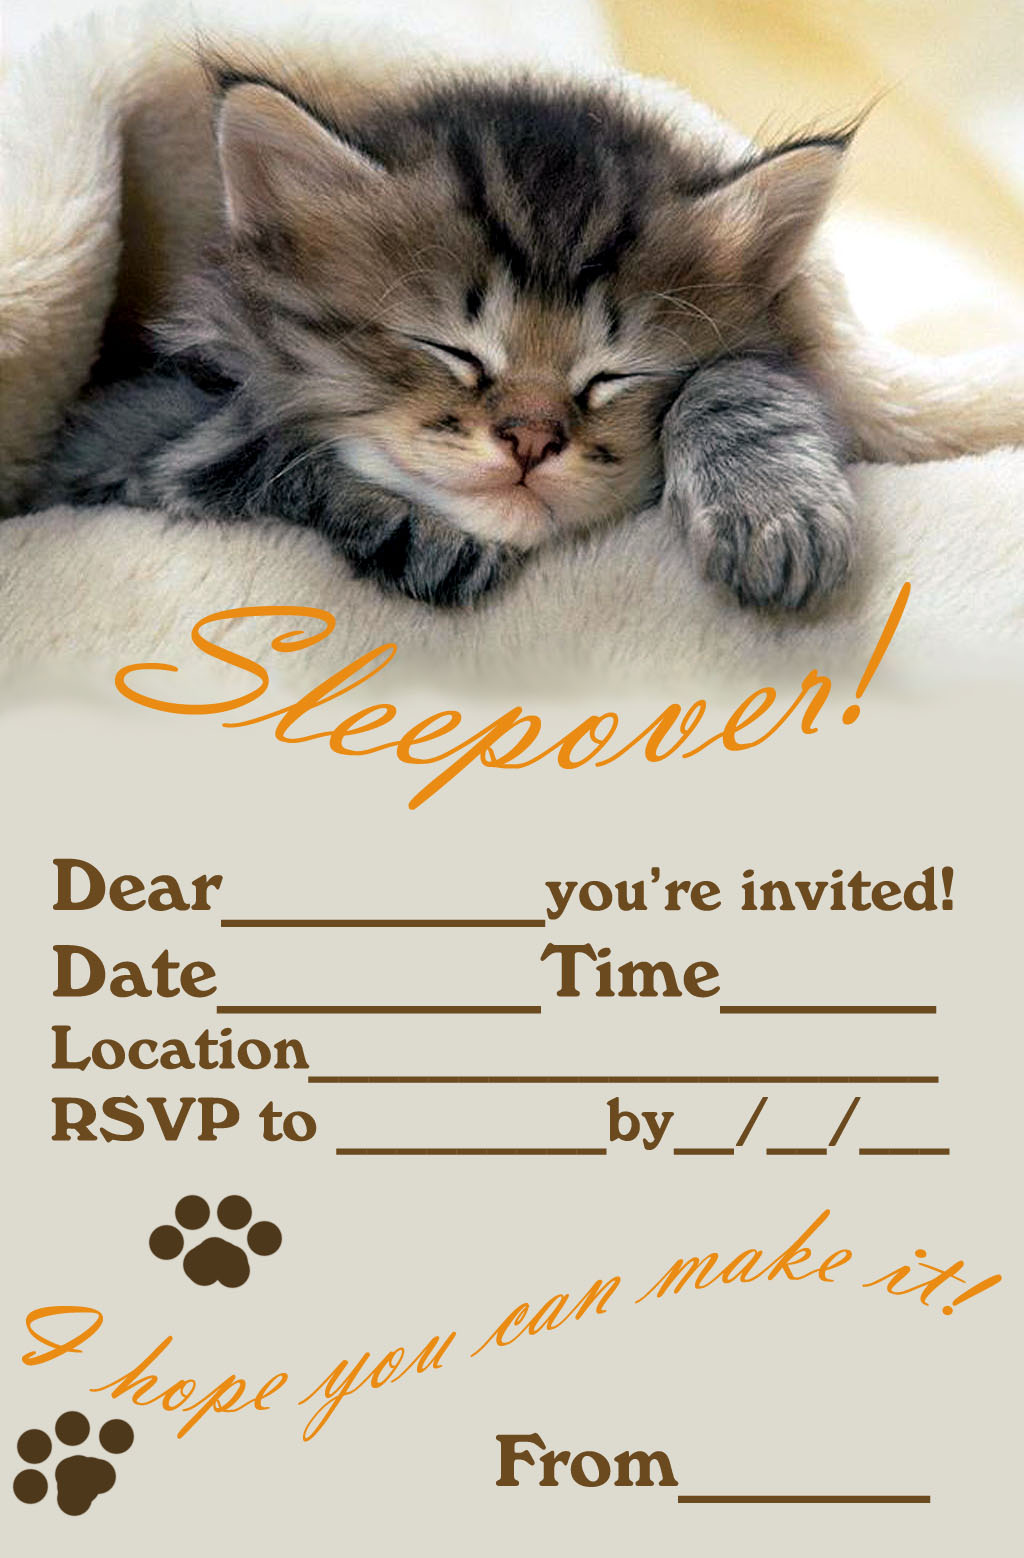 50 Beautiful Slumber Party Invitations Kittybabylove Com